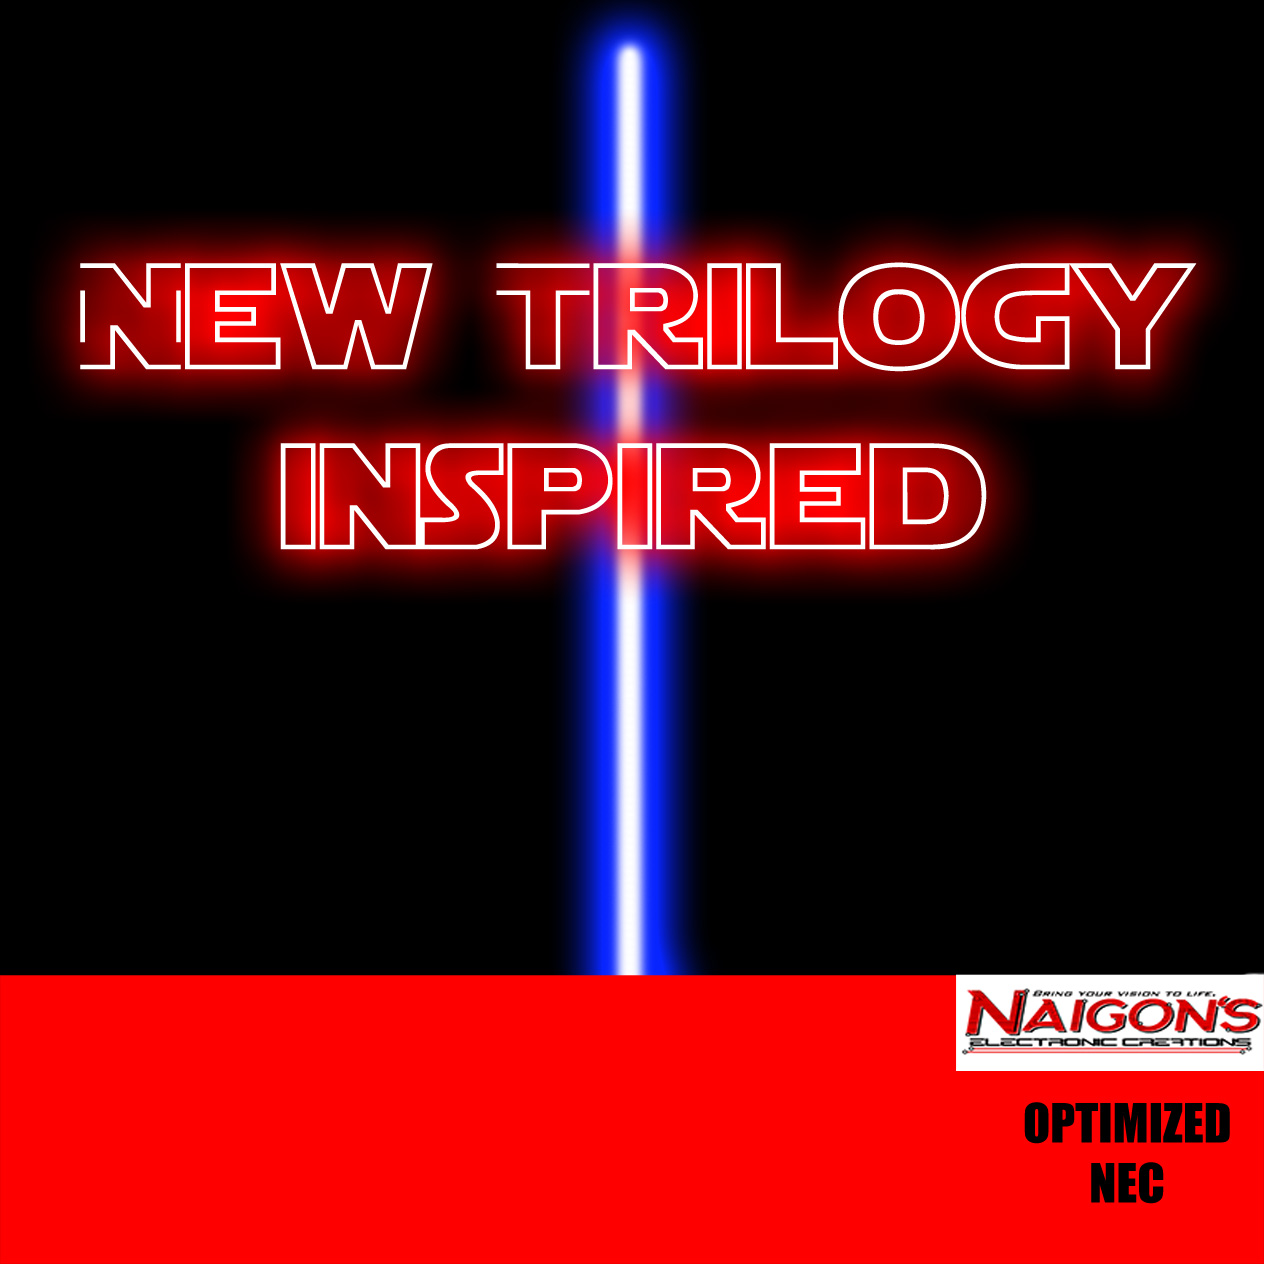 New Trilogy Inspired for NEC